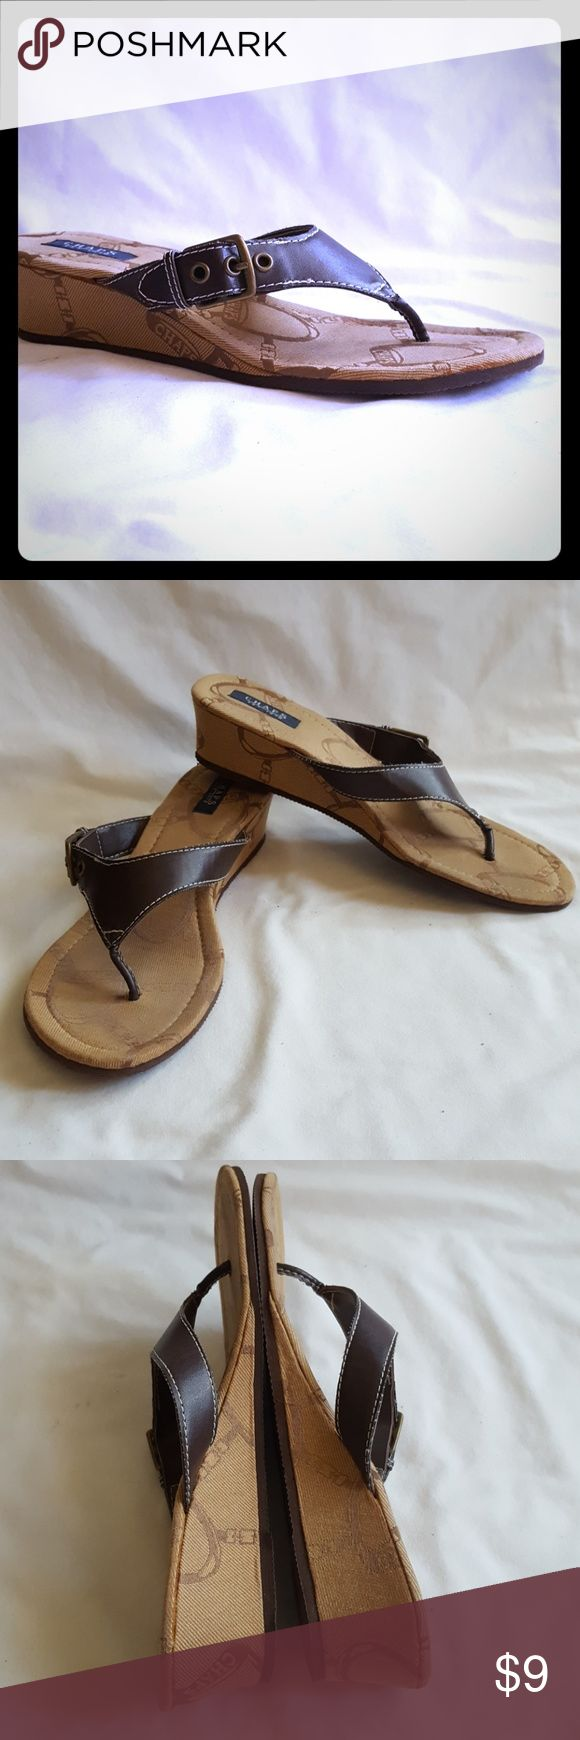 "Chaps Brown Wedge Sandal Cute Chaps lightweight brown flip flop like sandal with 2"" wedge and signature camel colored heel and insole.  Size 8 - 9  Good used condition. Smoke free and pet free home. Chaps Shoes Sandals"